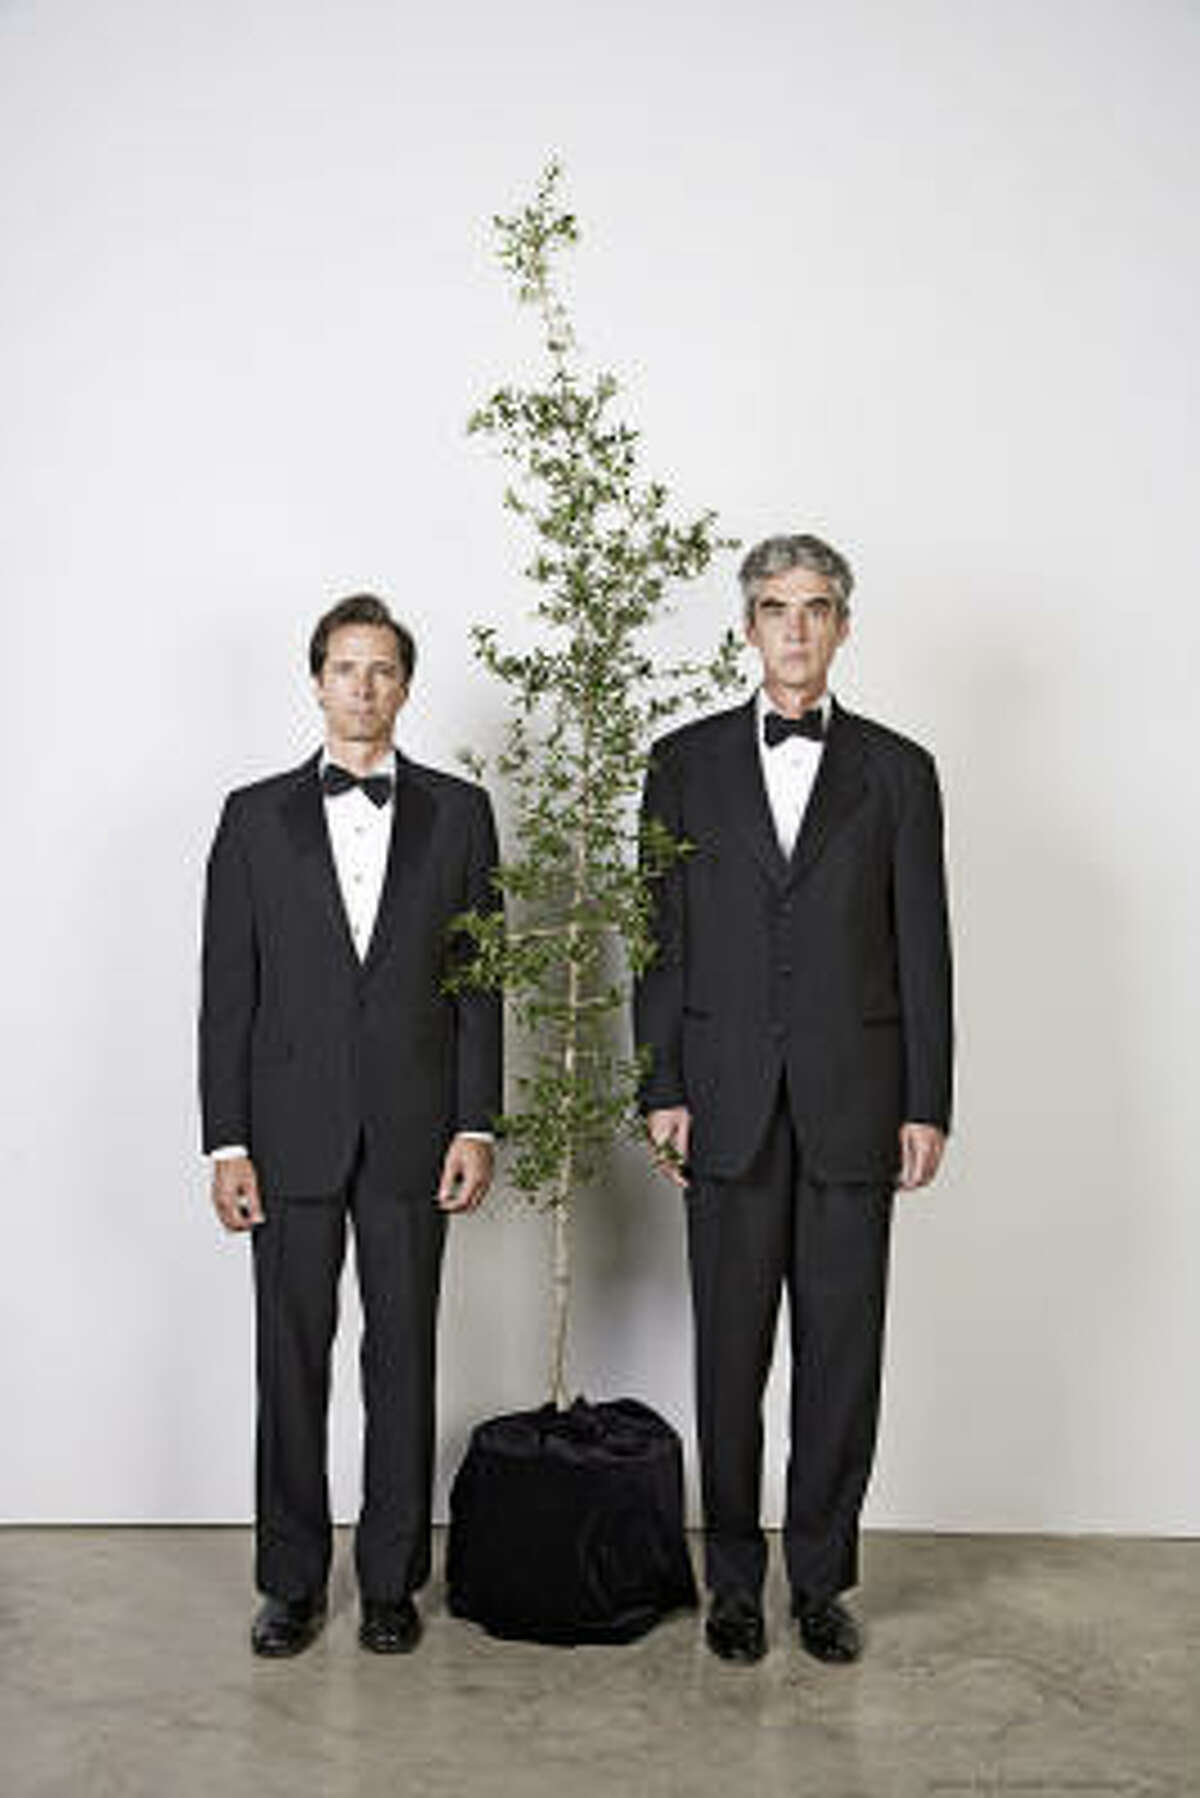 The Art Guys - Jack Massing, left, and Michael Galbreth - are staging a performance in which they marry a plant.